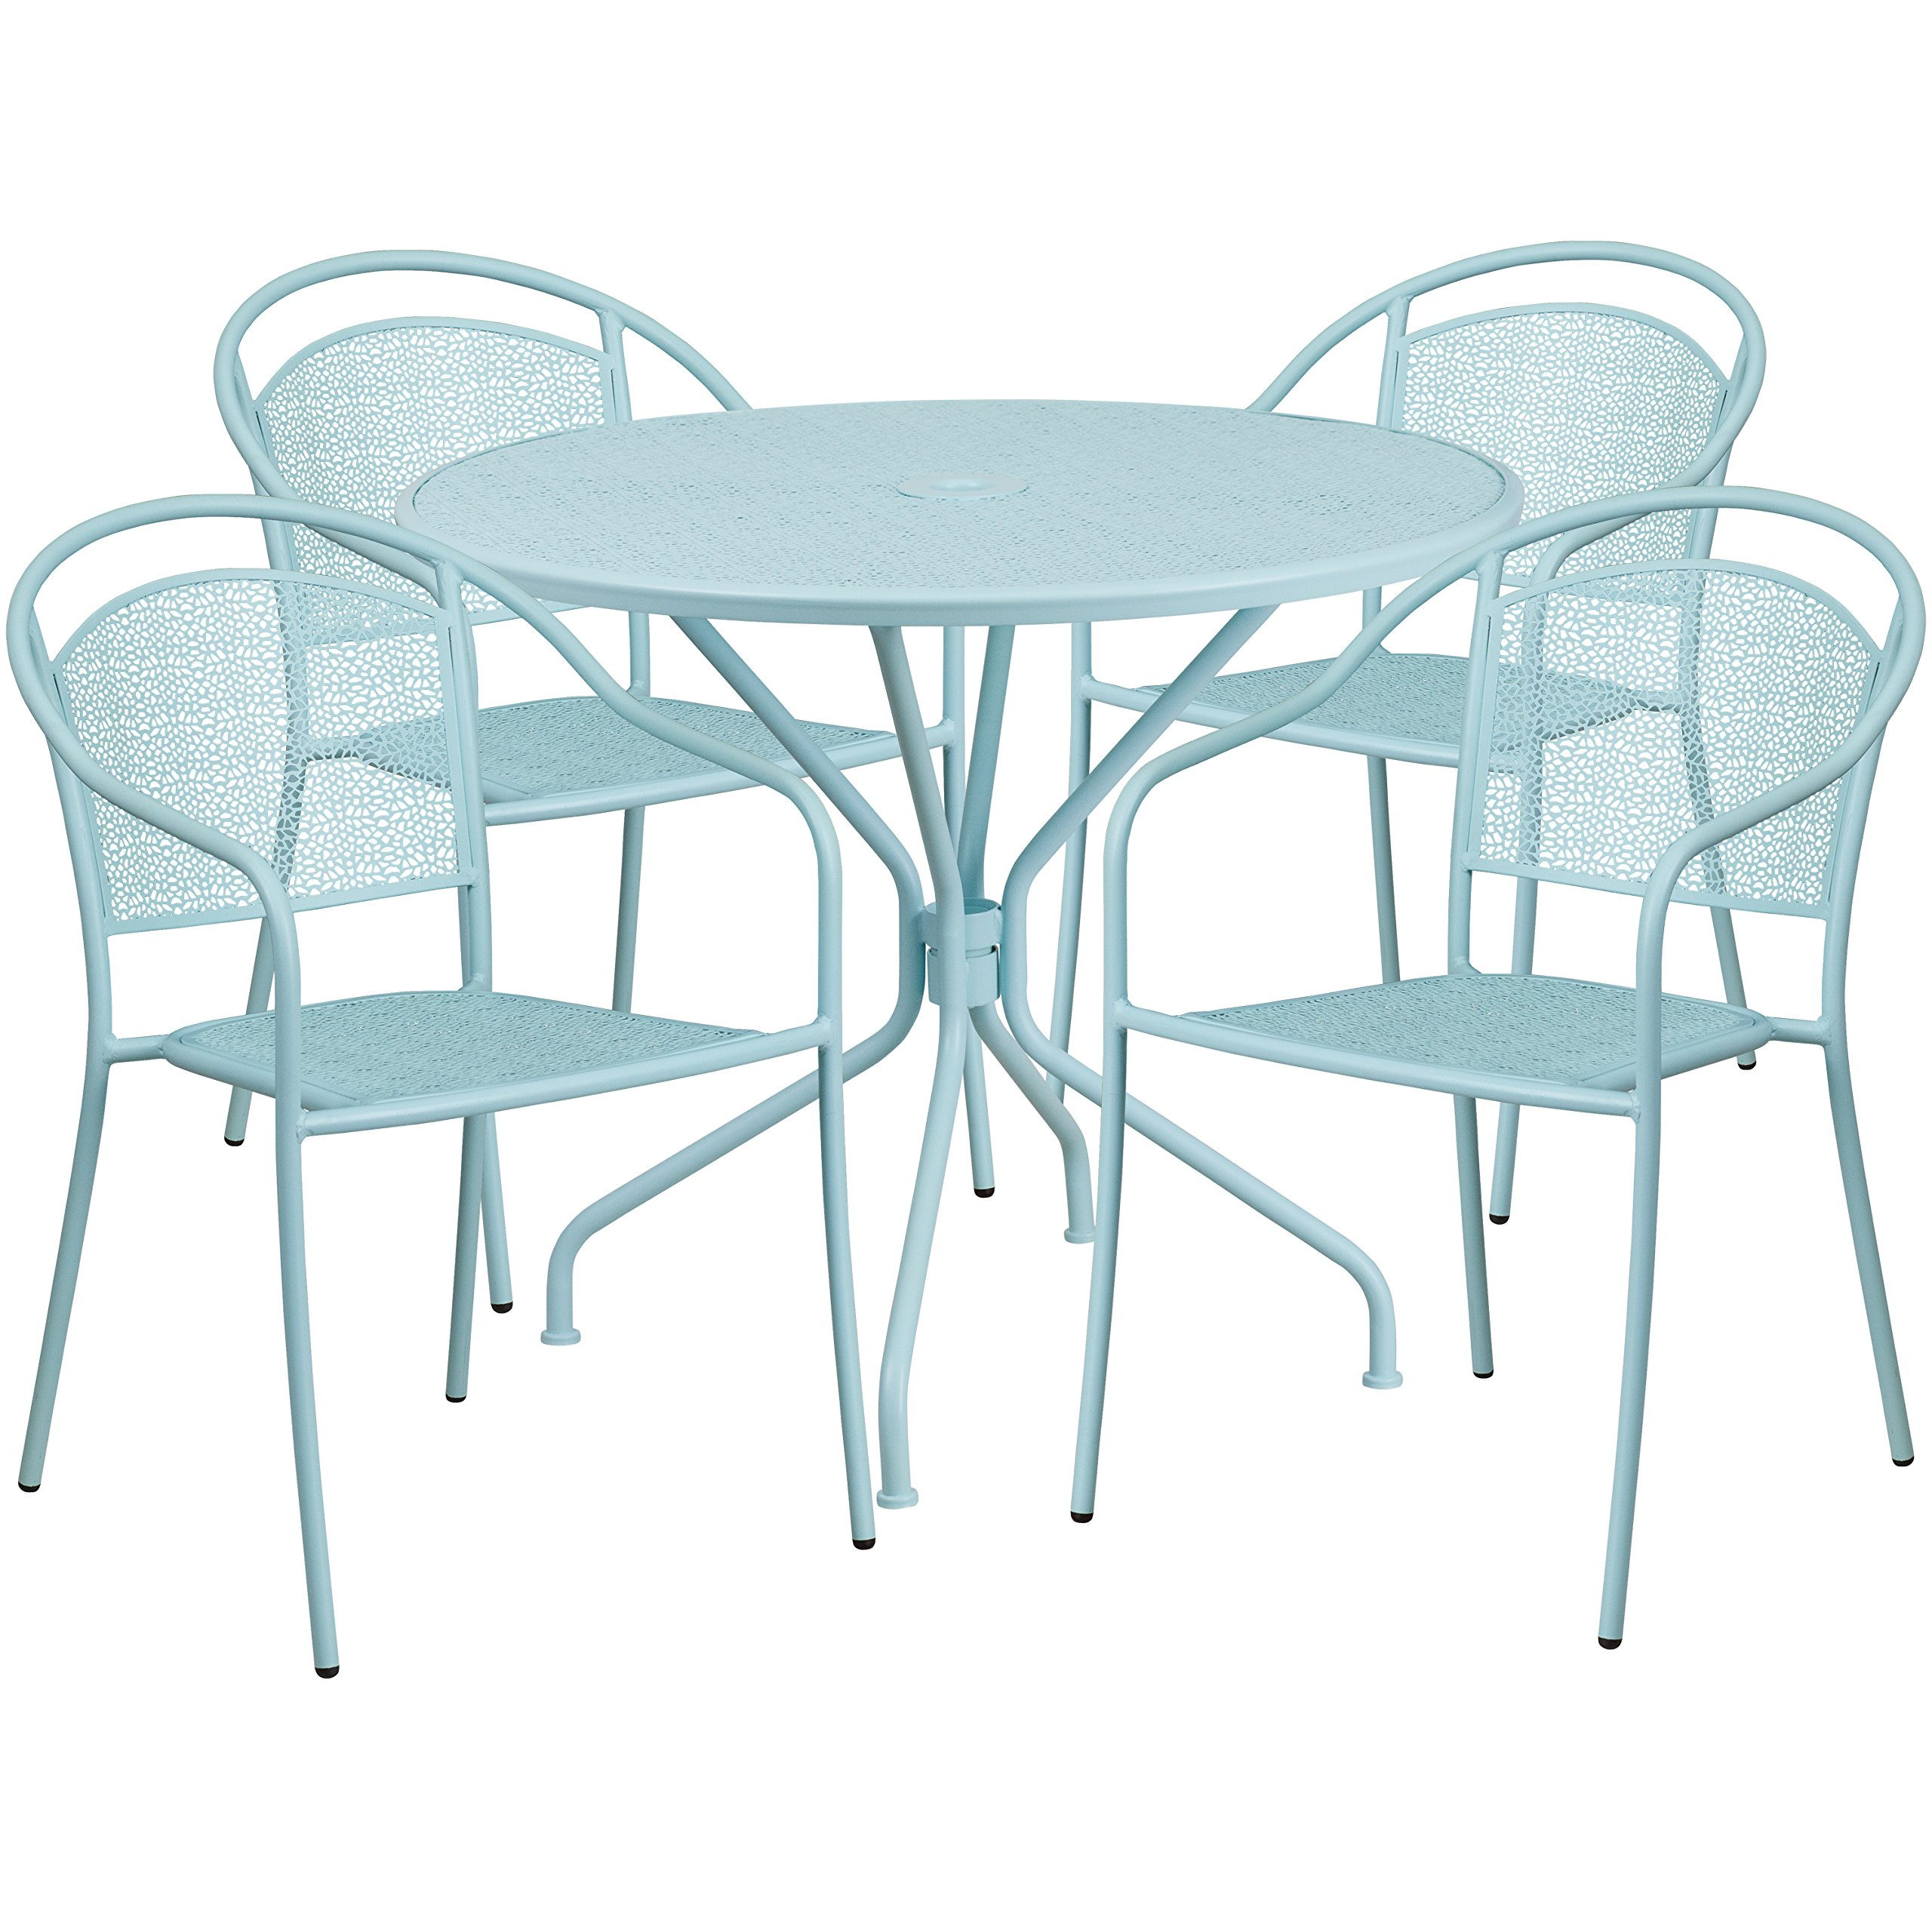 Flash Furniture 35.25'' Round Sky Blue Indoor-Outdoor Steel Patio Table Set with 4 Round Back Chairs